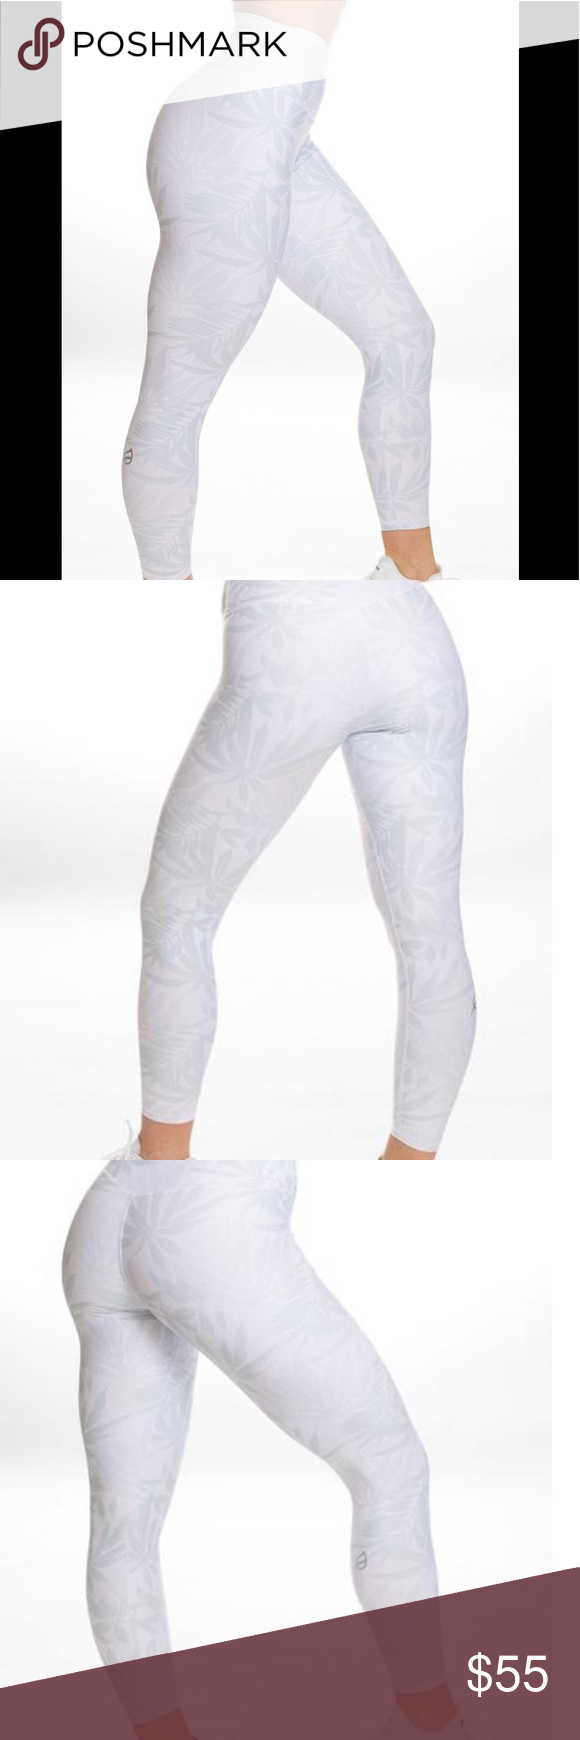 Ptula Desaree Ii Swift Legging Color Is Glistening White Size Extra Small Beautiful Print Too Small Leggings Are Not Pants Colorful Leggings Pants For Women 1,079 likes · 16 talking about this. pinterest